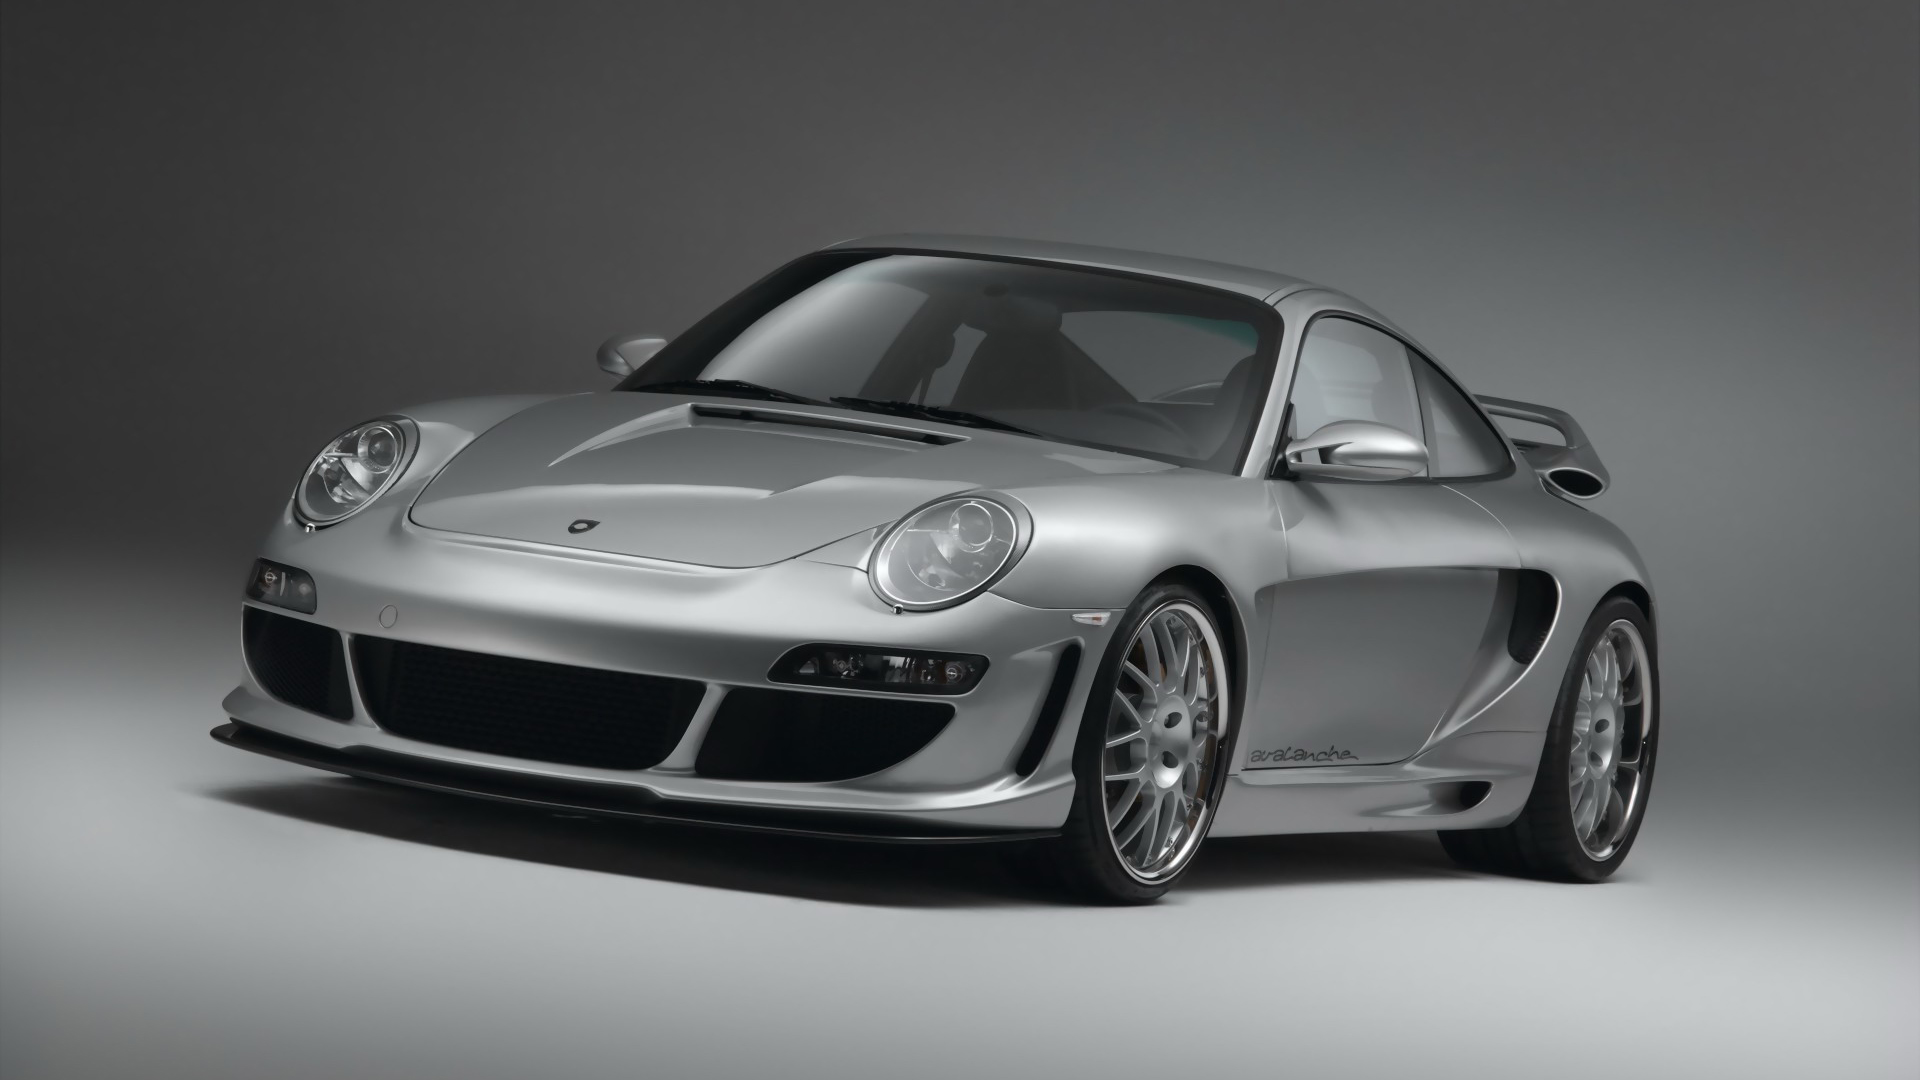 Porsche Hd Wallpapers 1080p: Porshe Car HD Wallpaper-1080p Free HD Resolutions